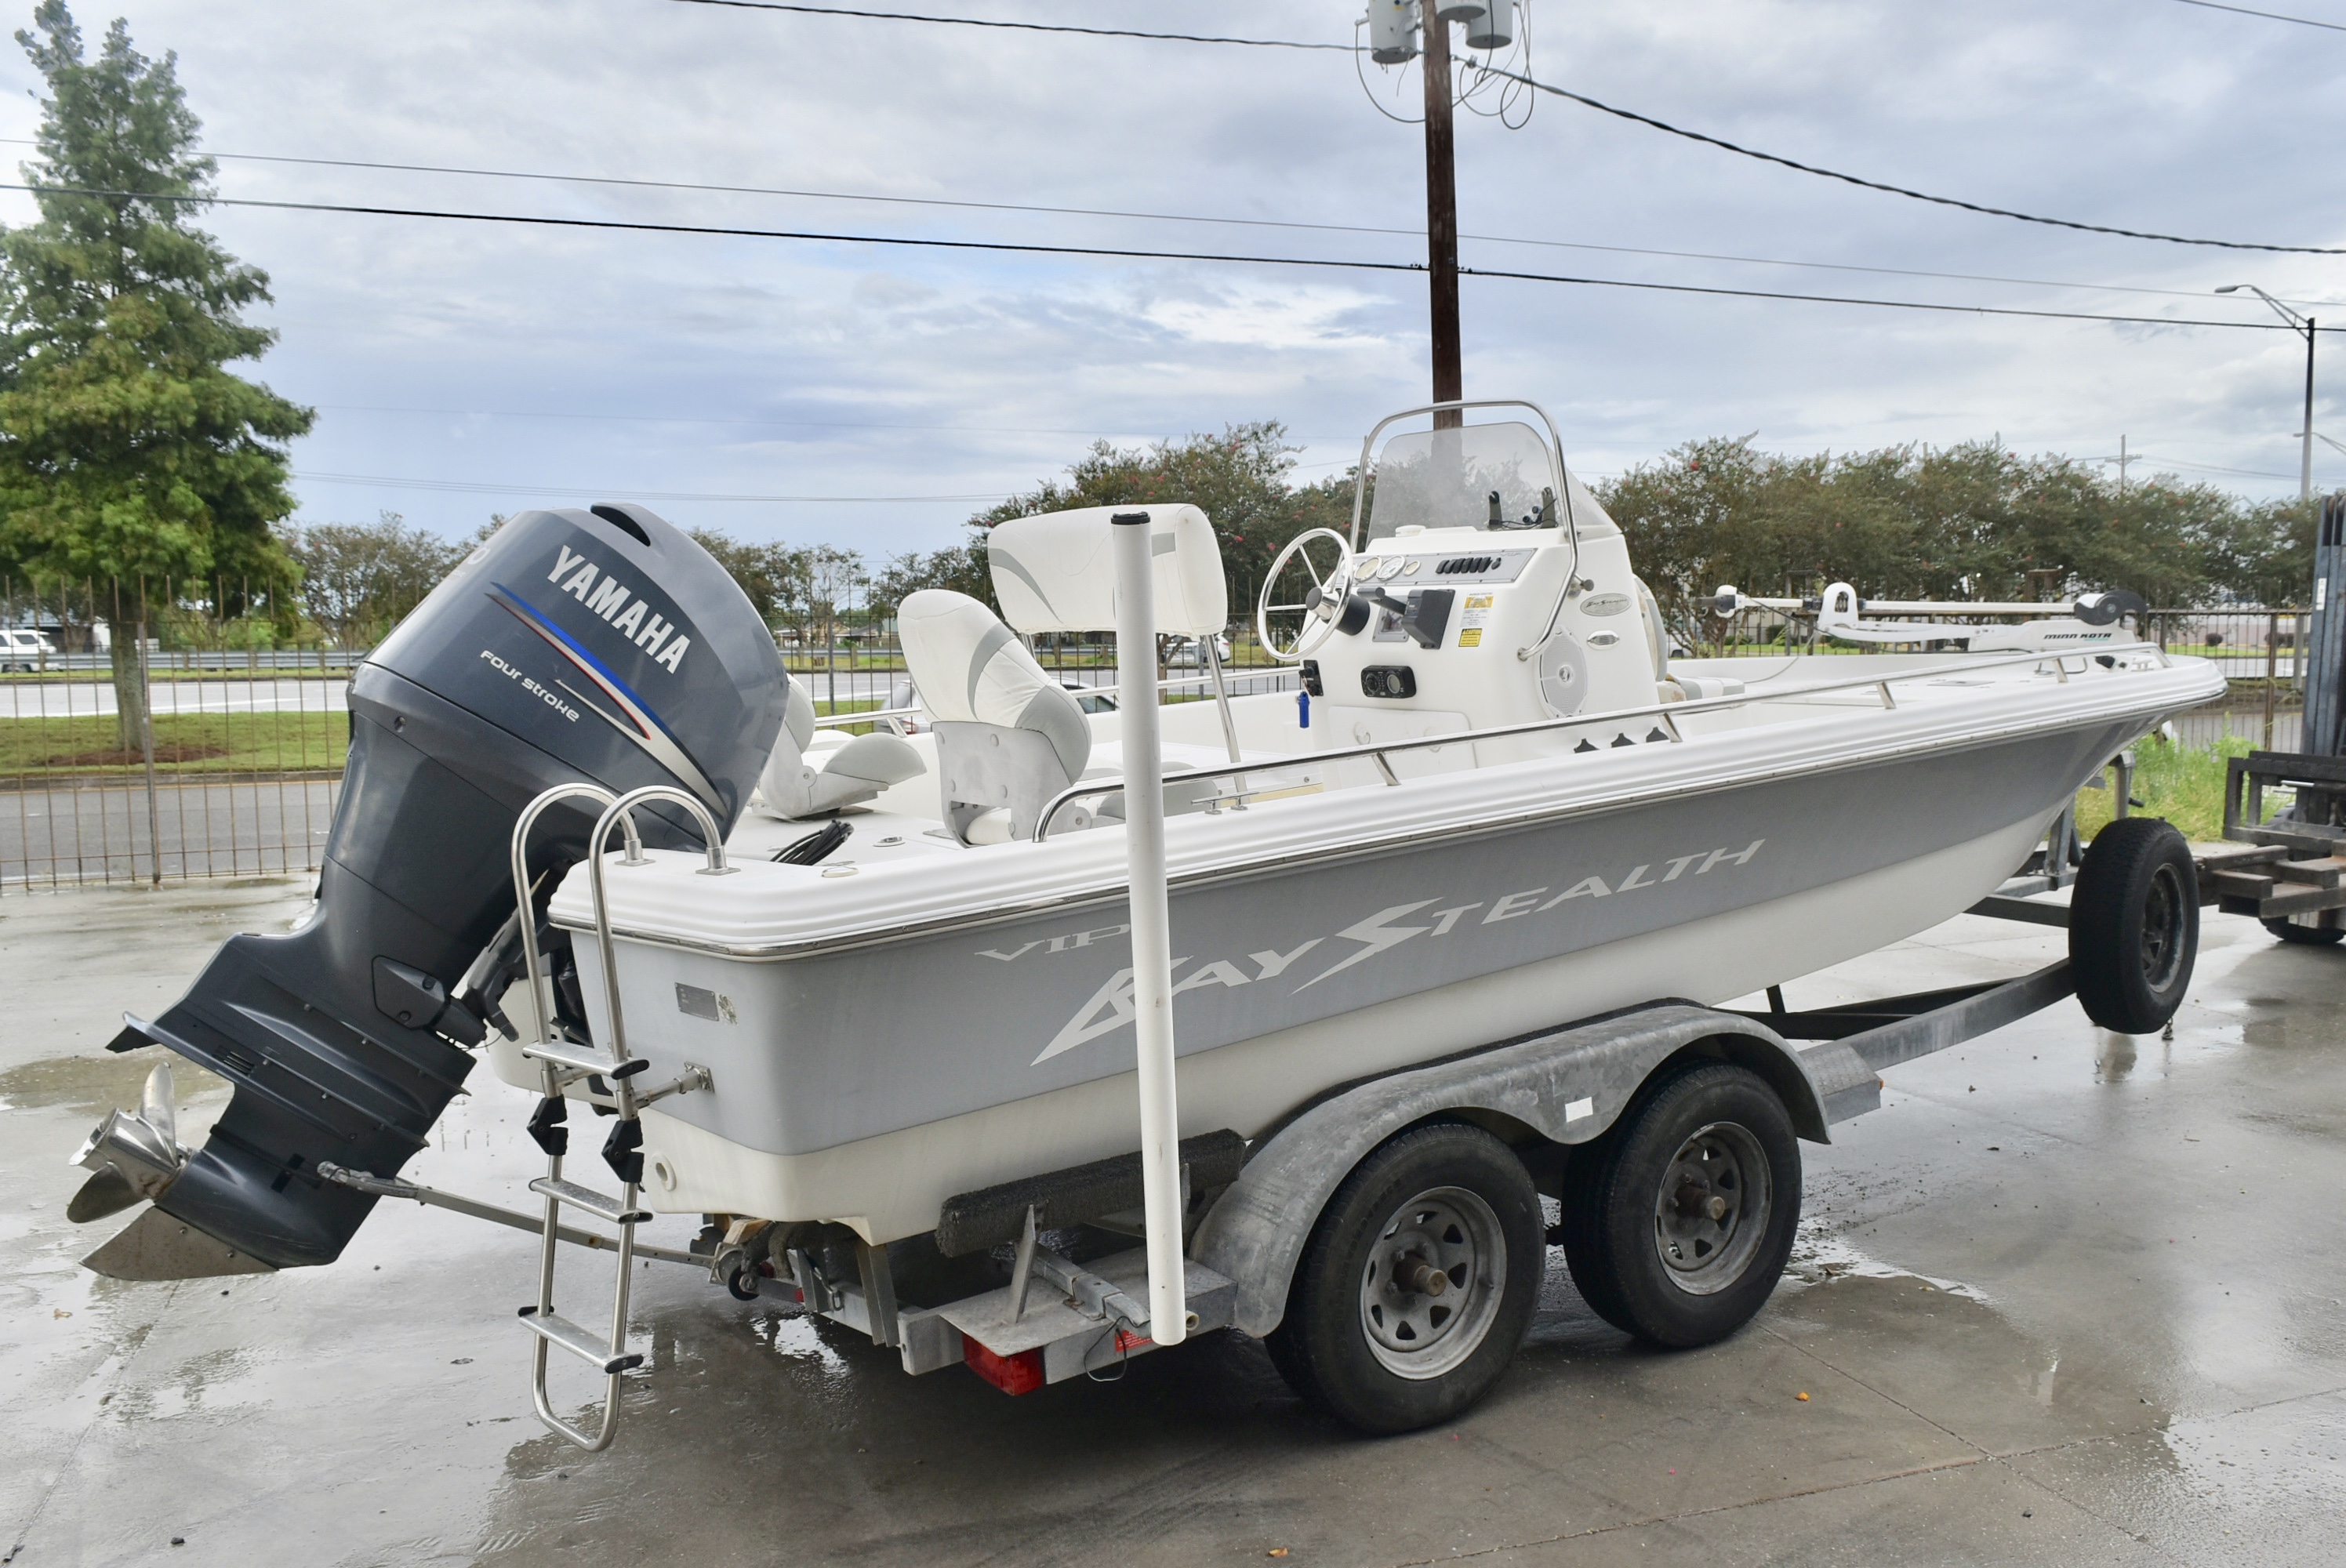 2007 Bay Stealth boat for sale, model of the boat is 2030 & Image # 6 of 8